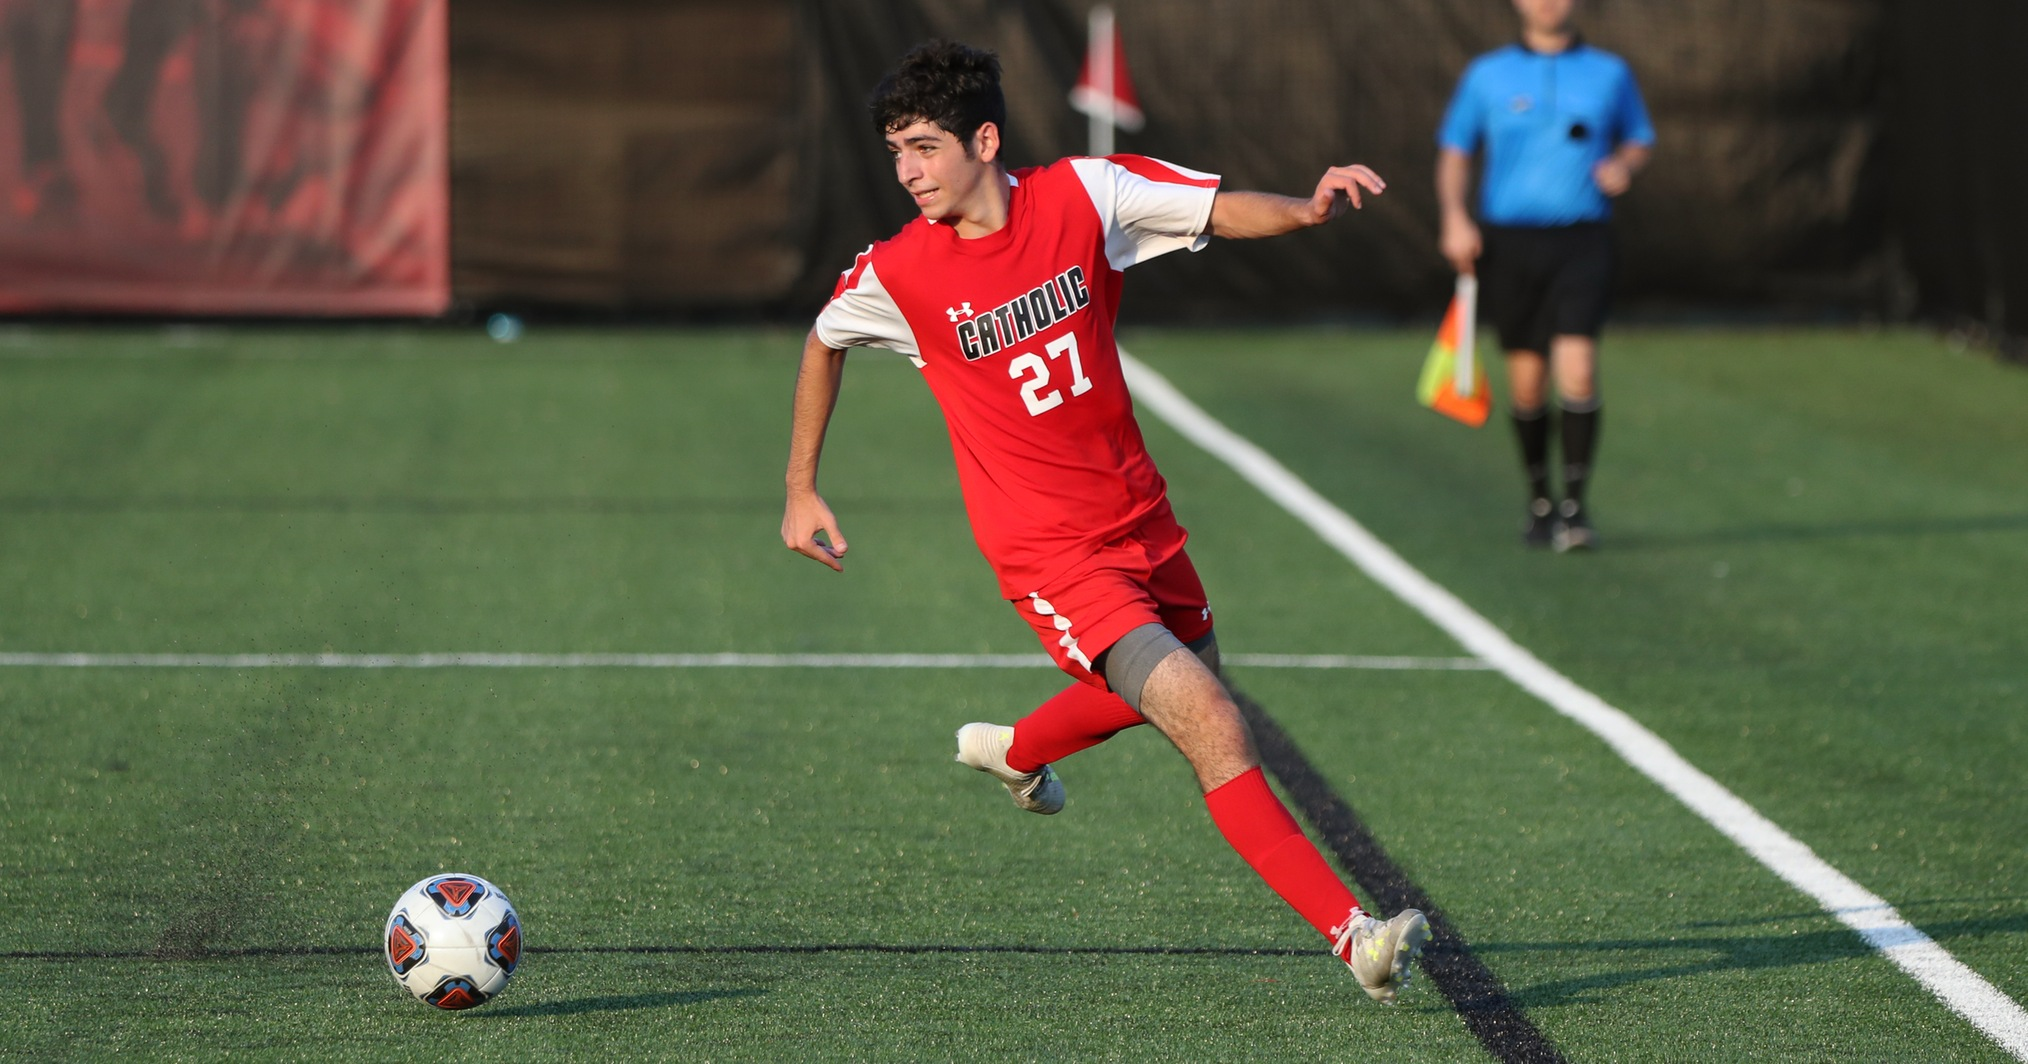 Siahpoosh's Late Goal Lifts Cardinals Over Hornets